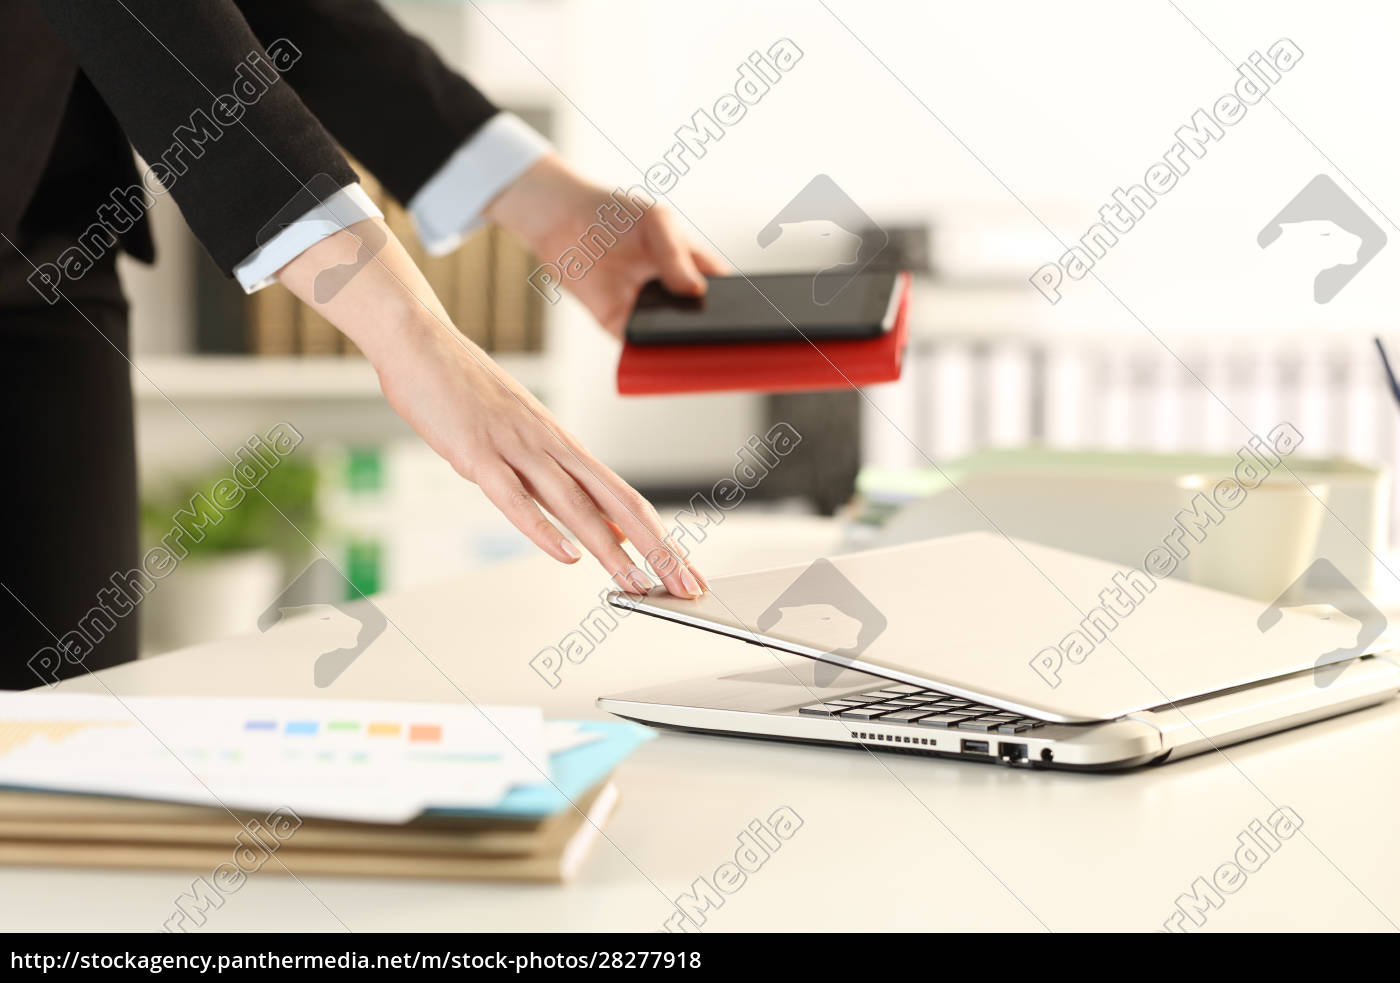 executive, hands, leaving, office, closing, laptop - 28277918